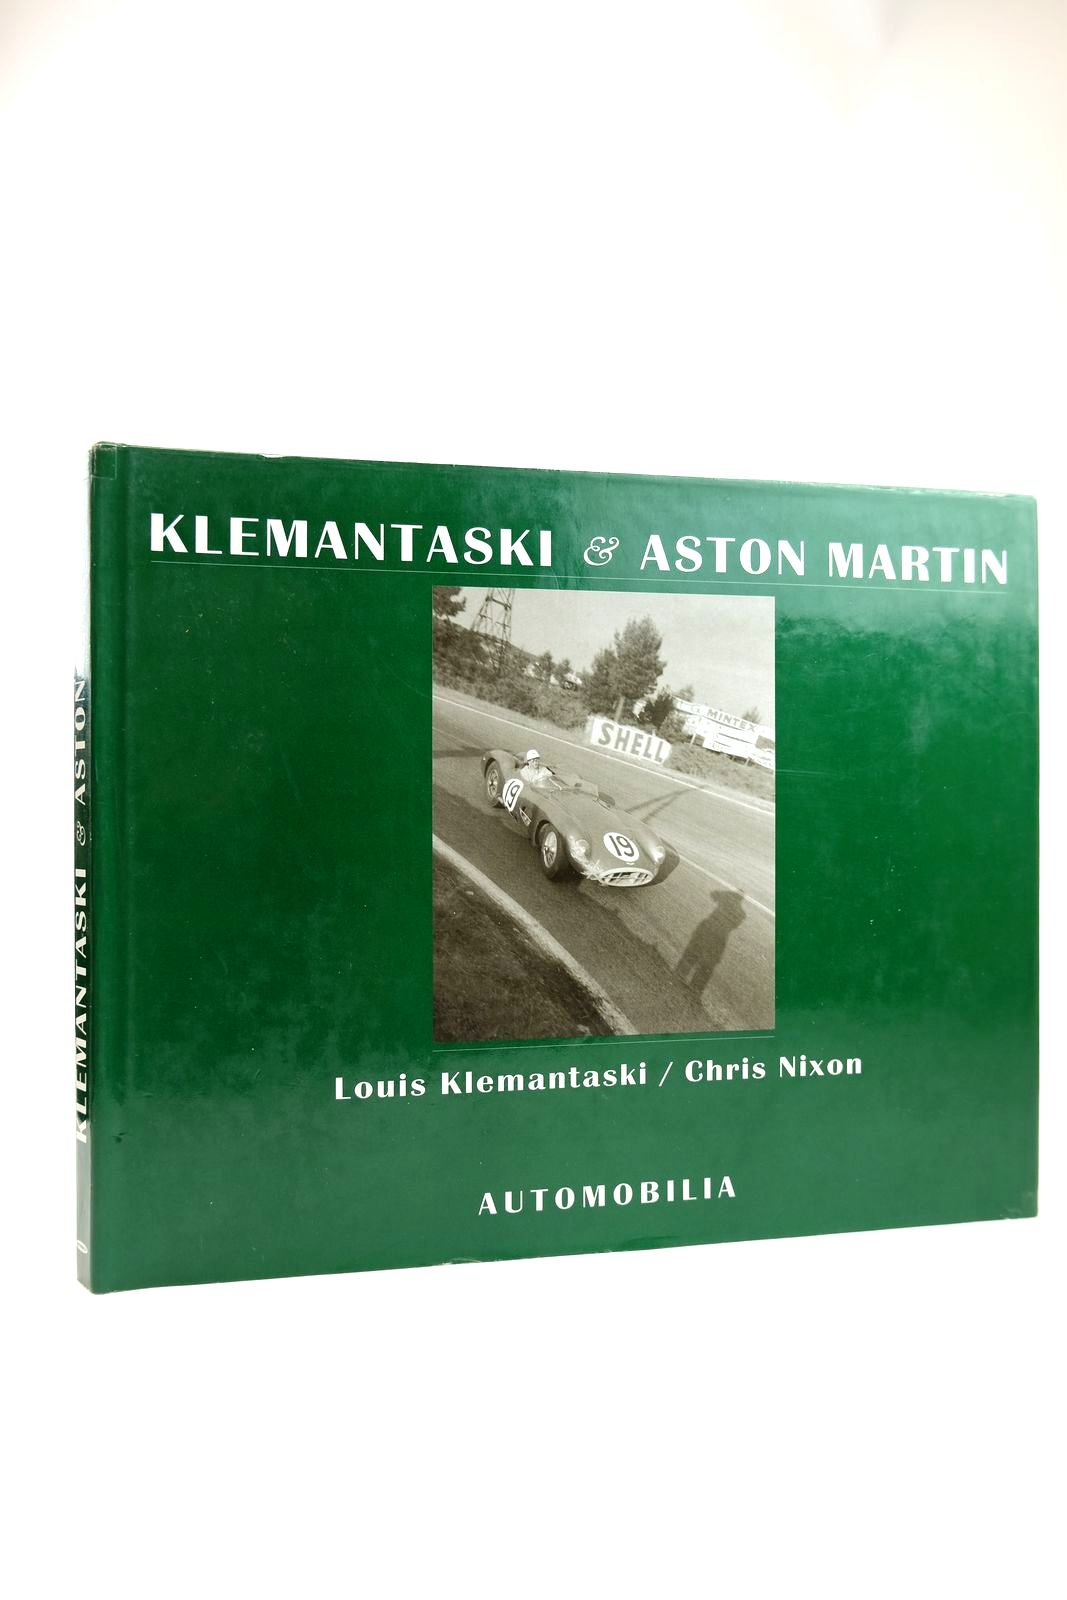 Photo of KLEMANTASKI & ASTON MARTIN 1948-1959 written by Klemantaski, Louis Nixon, Chris published by Automobilia (STOCK CODE: 2131778)  for sale by Stella & Rose's Books